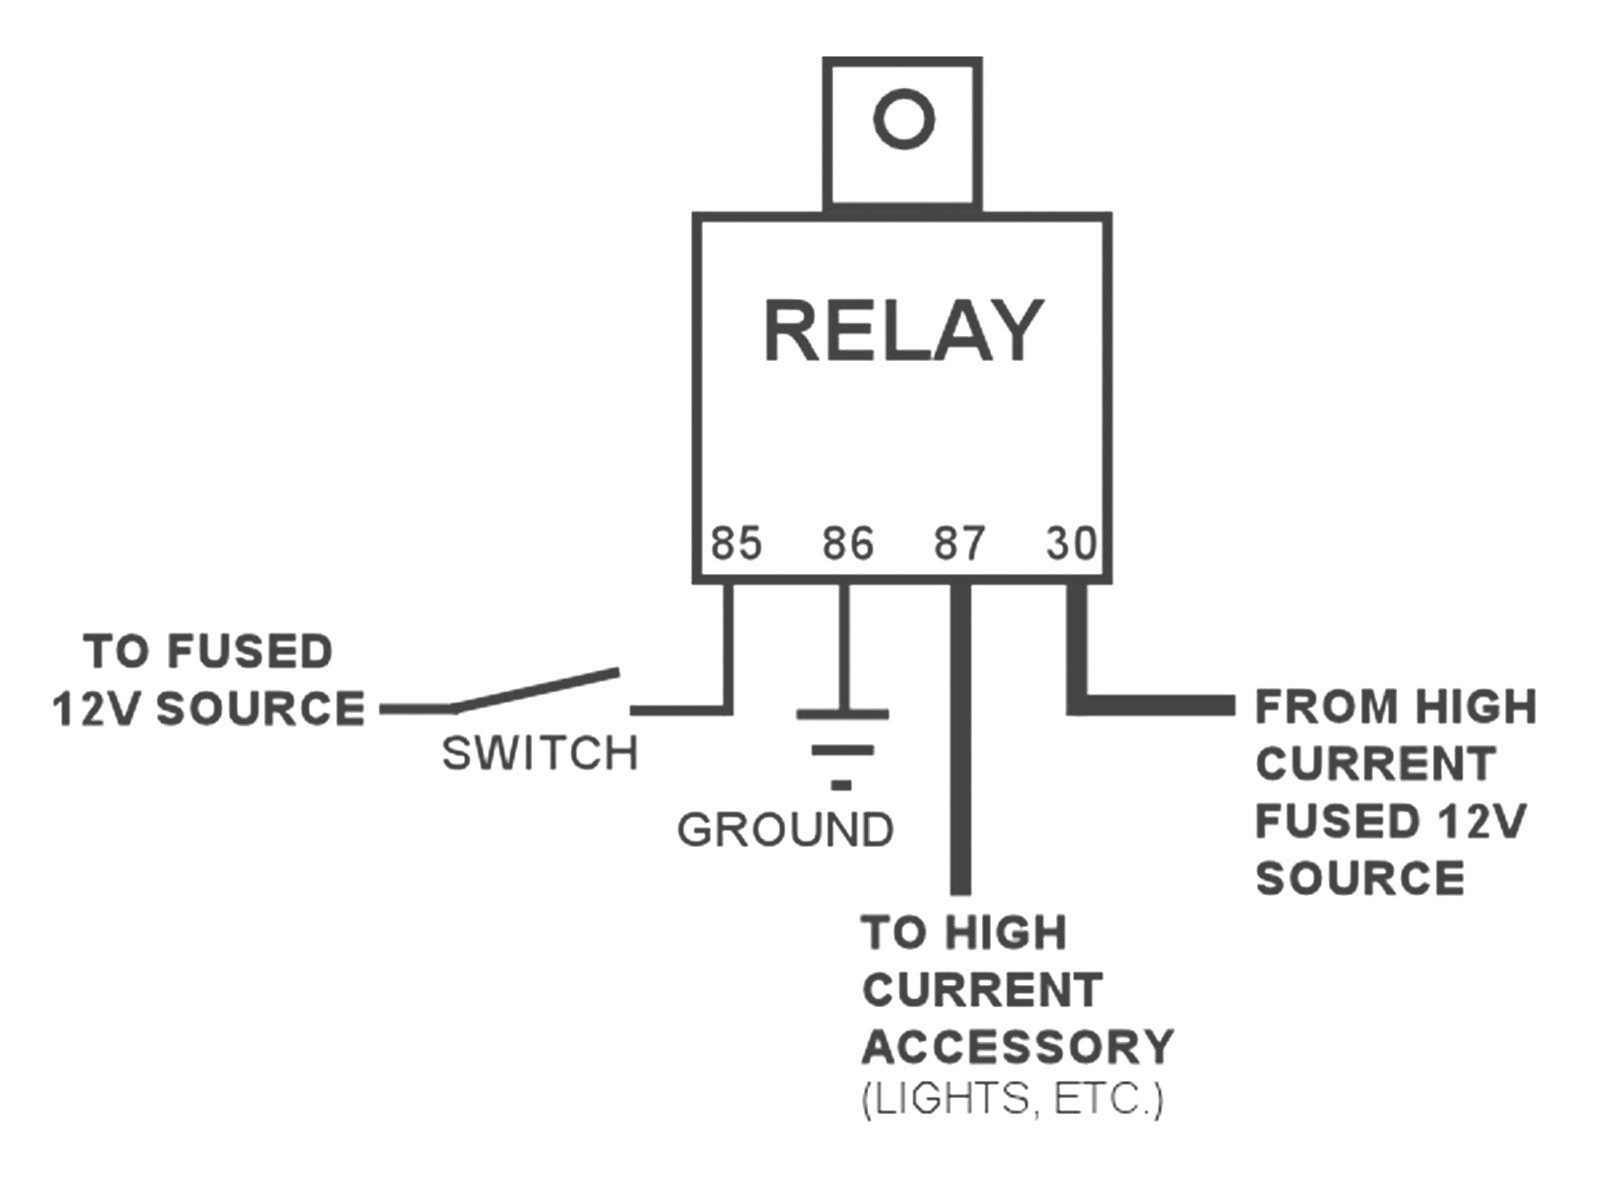 Wiring Diagram For Spotlights With A Relay Valid Beautiful 4 Pin Relay Wiring Diagram Diagram